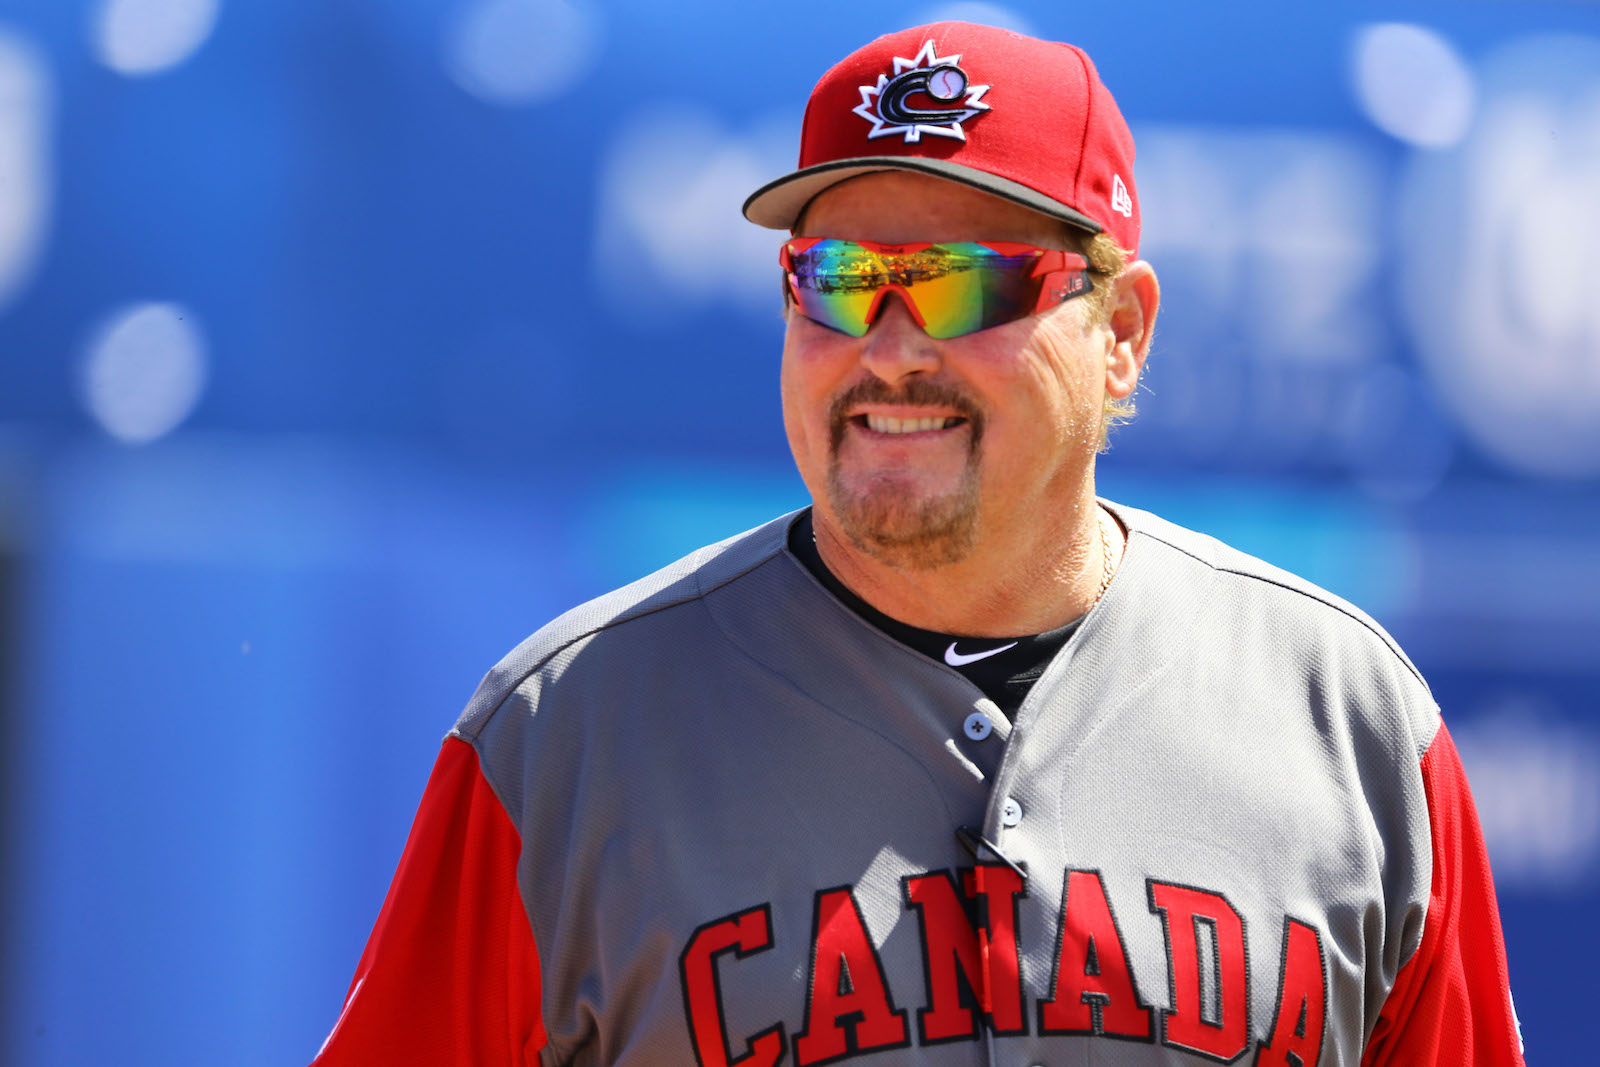 WBC: Canada looks sharp in win over Blue Jays